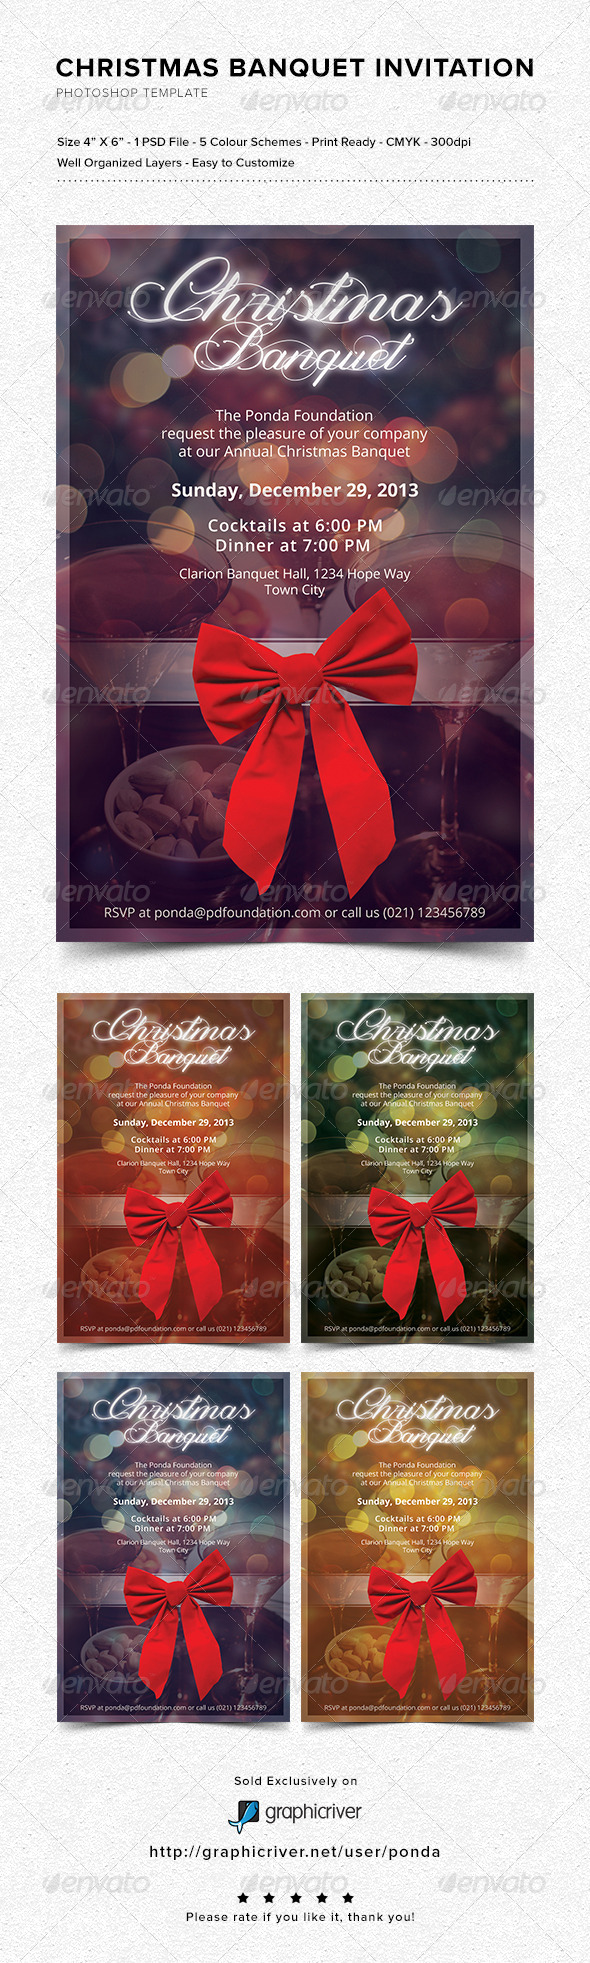 Christmas Banquet Invitation - Invitations Cards & Invites